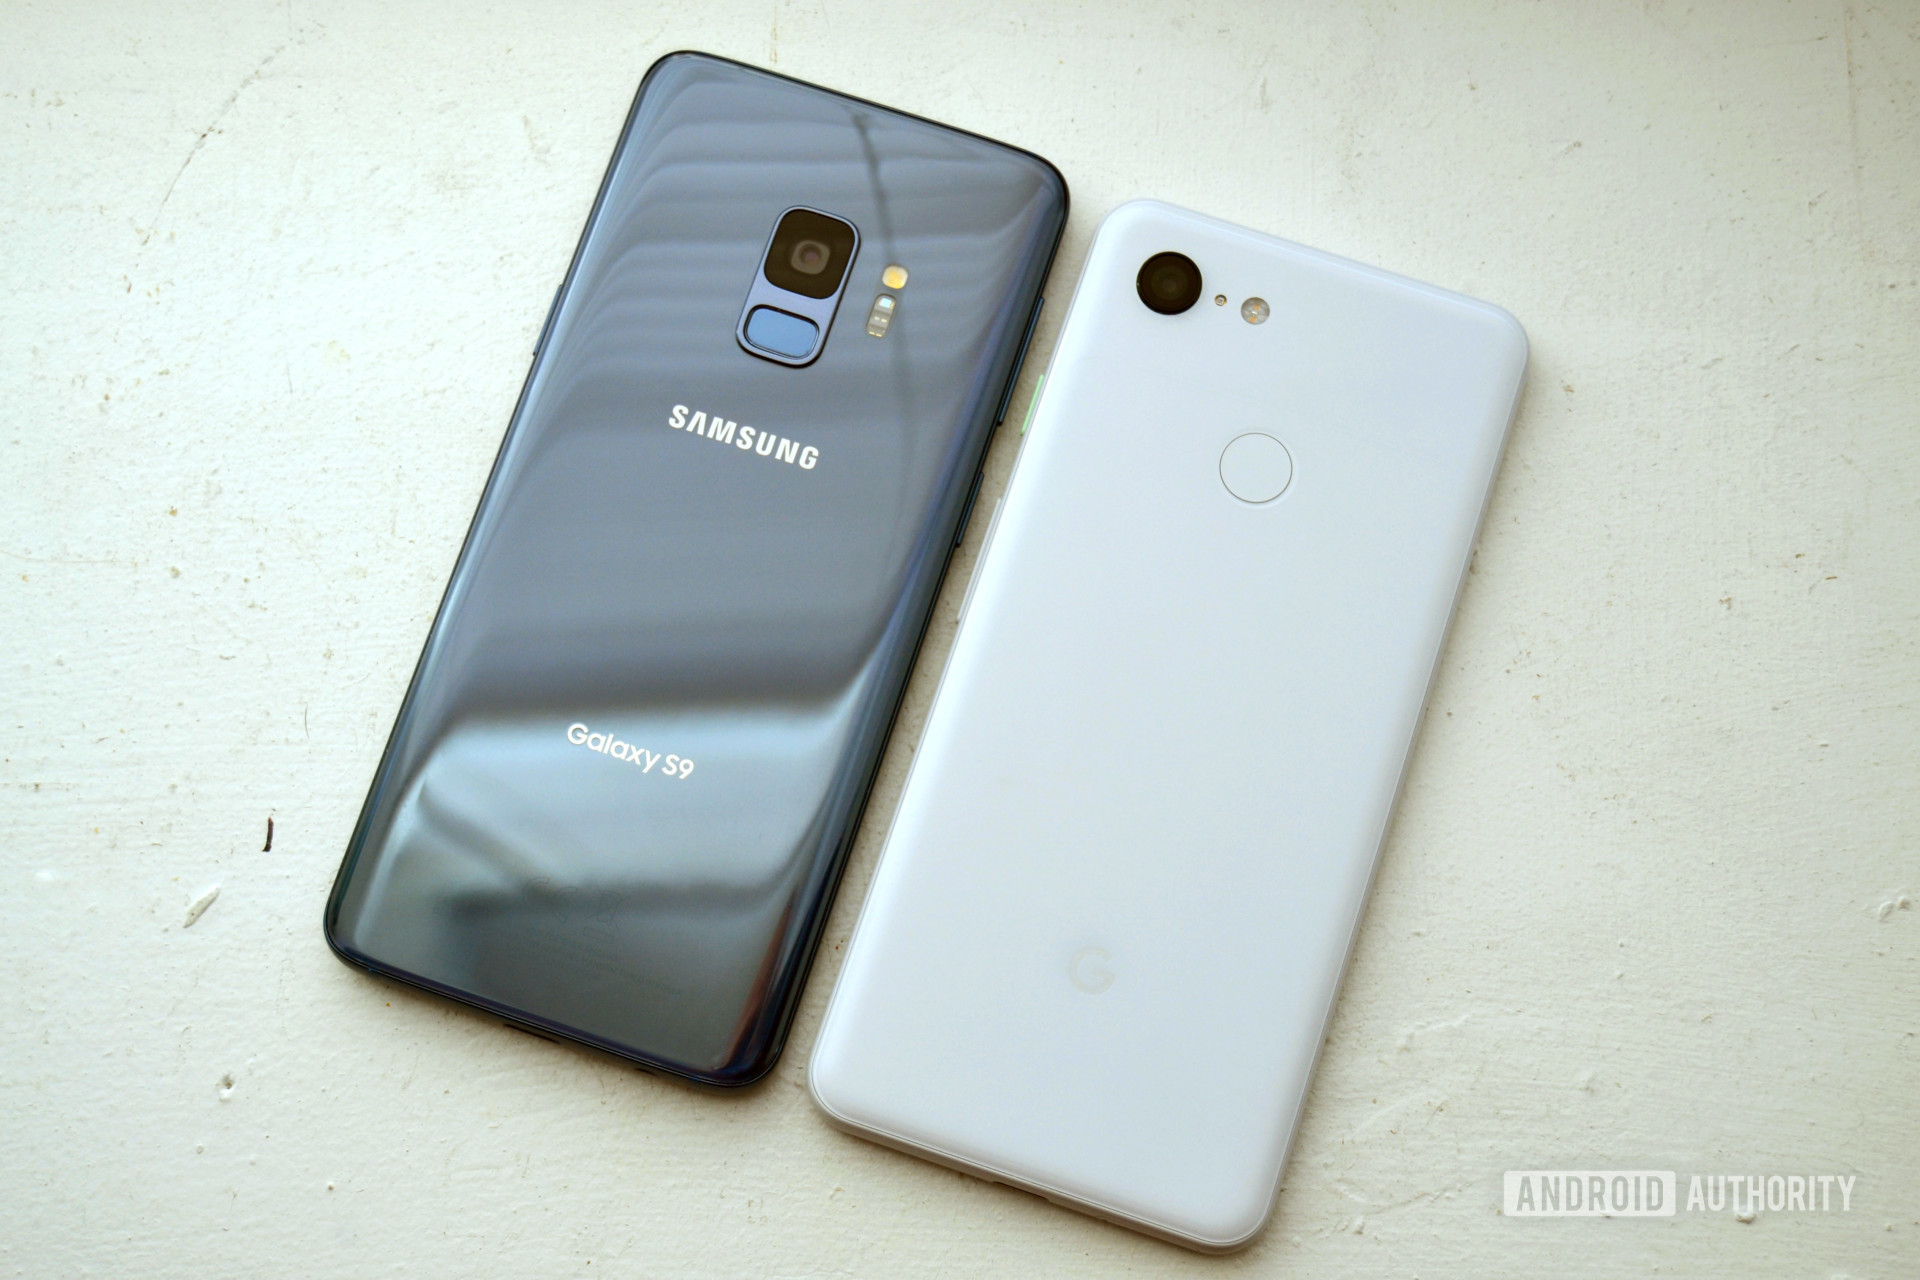 Photo of the backside of a google pixel 3  next to a samsung galaxy s9 comparing cameras design